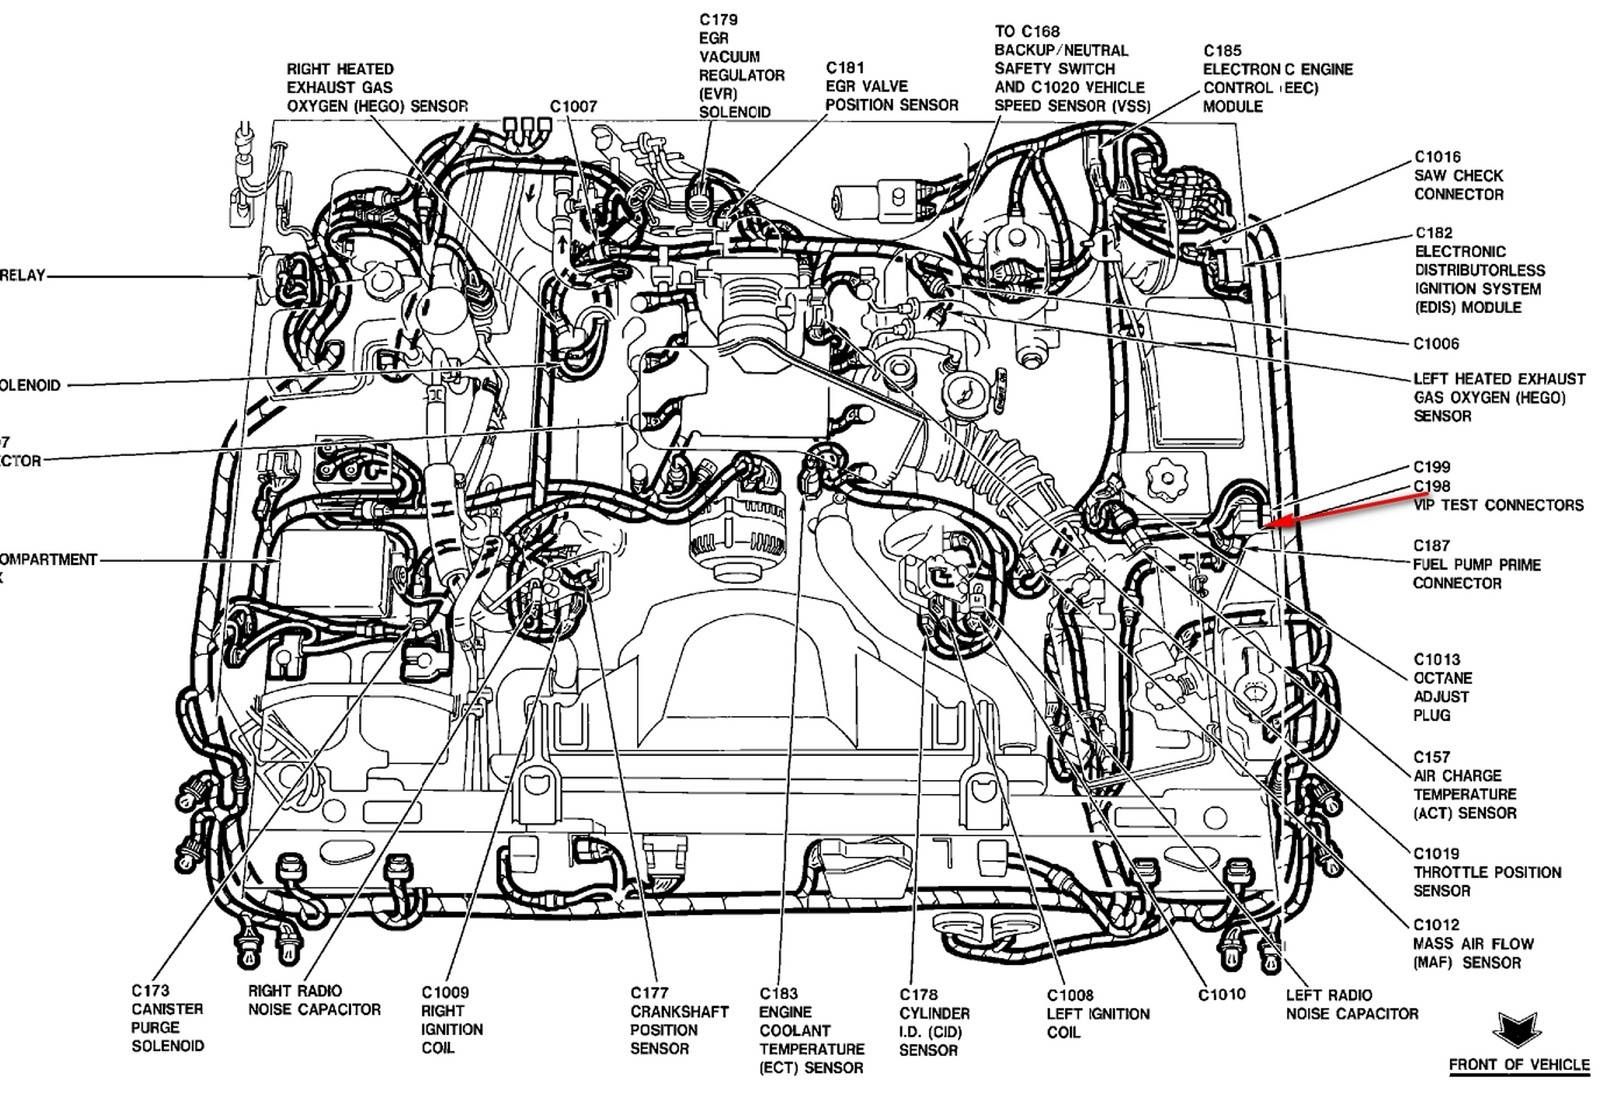 2006 Equinox Engine Wiring Diagram - basic electrical wiring ... on